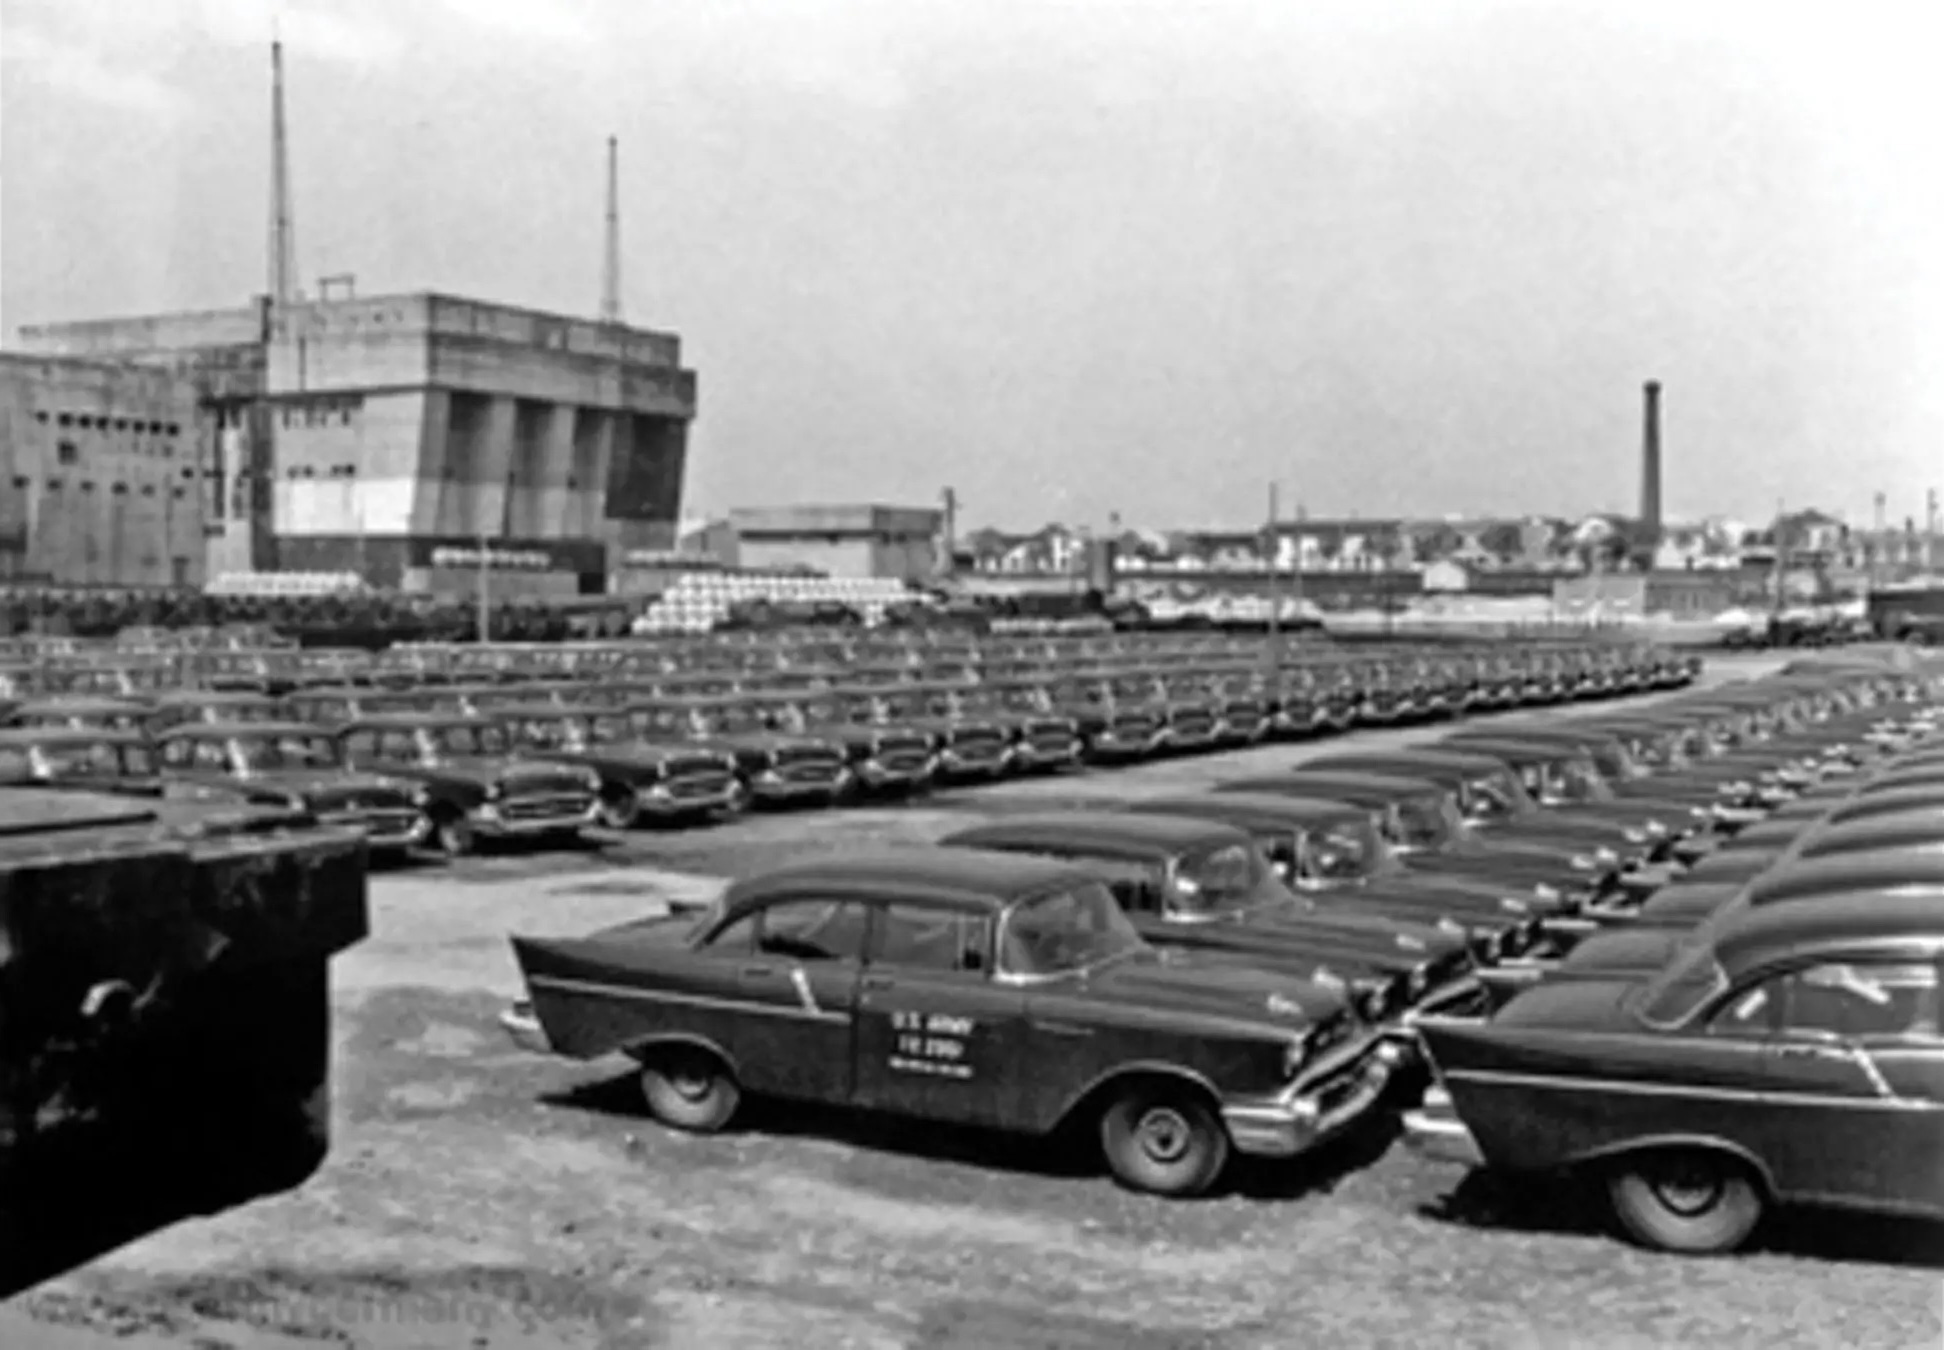 1957 Chevrolet Model 1503 Military Staff Car historic picture